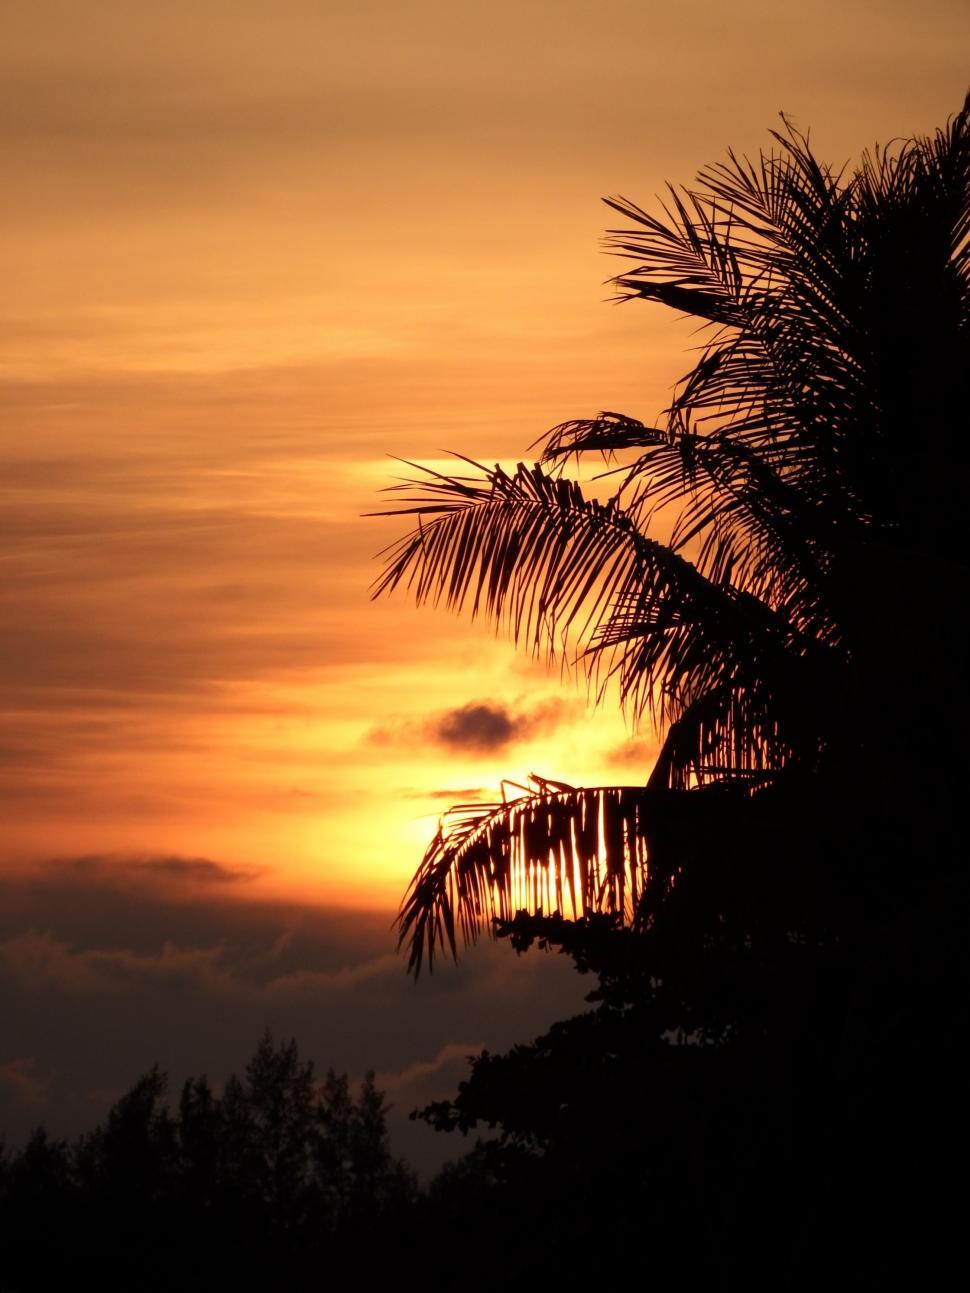 Download Free Stock Photo of Tropical Palm Tree Sunset